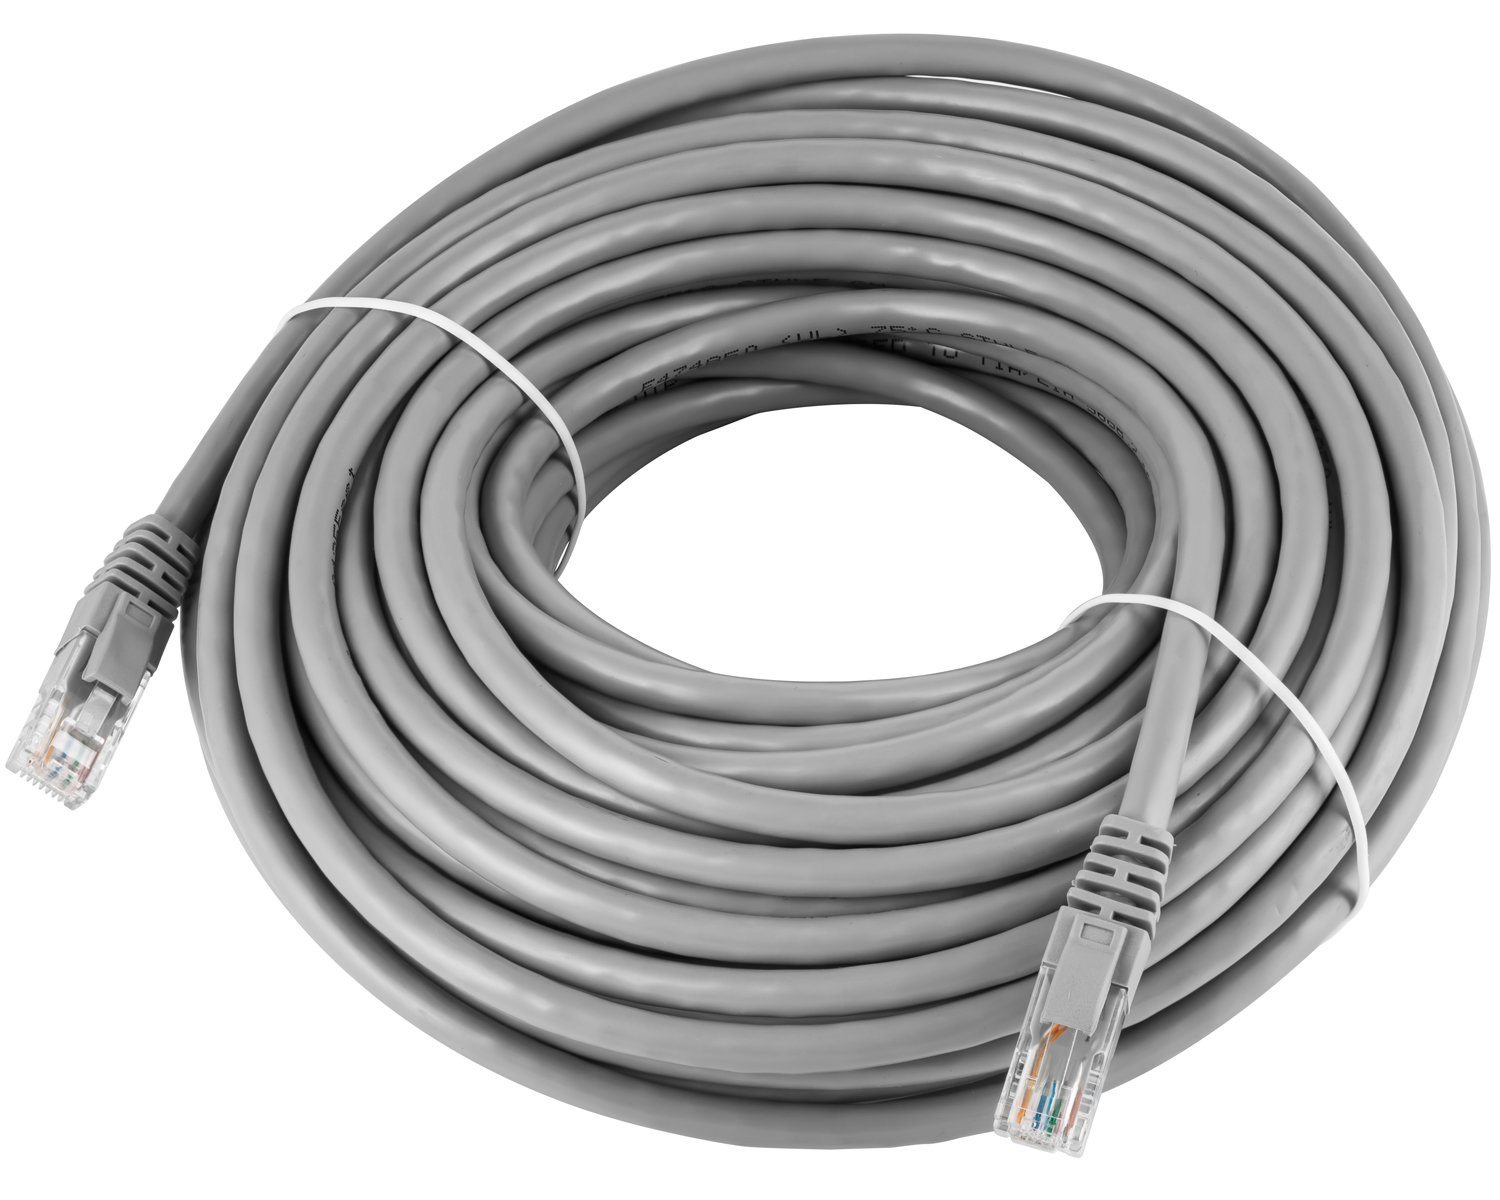 Maximm Cat6 Snagless Ethernet Cable - 75 Feet - Gray - Pure Copper - UL Listed - Cable Ties Included by Maximm (Image #2)